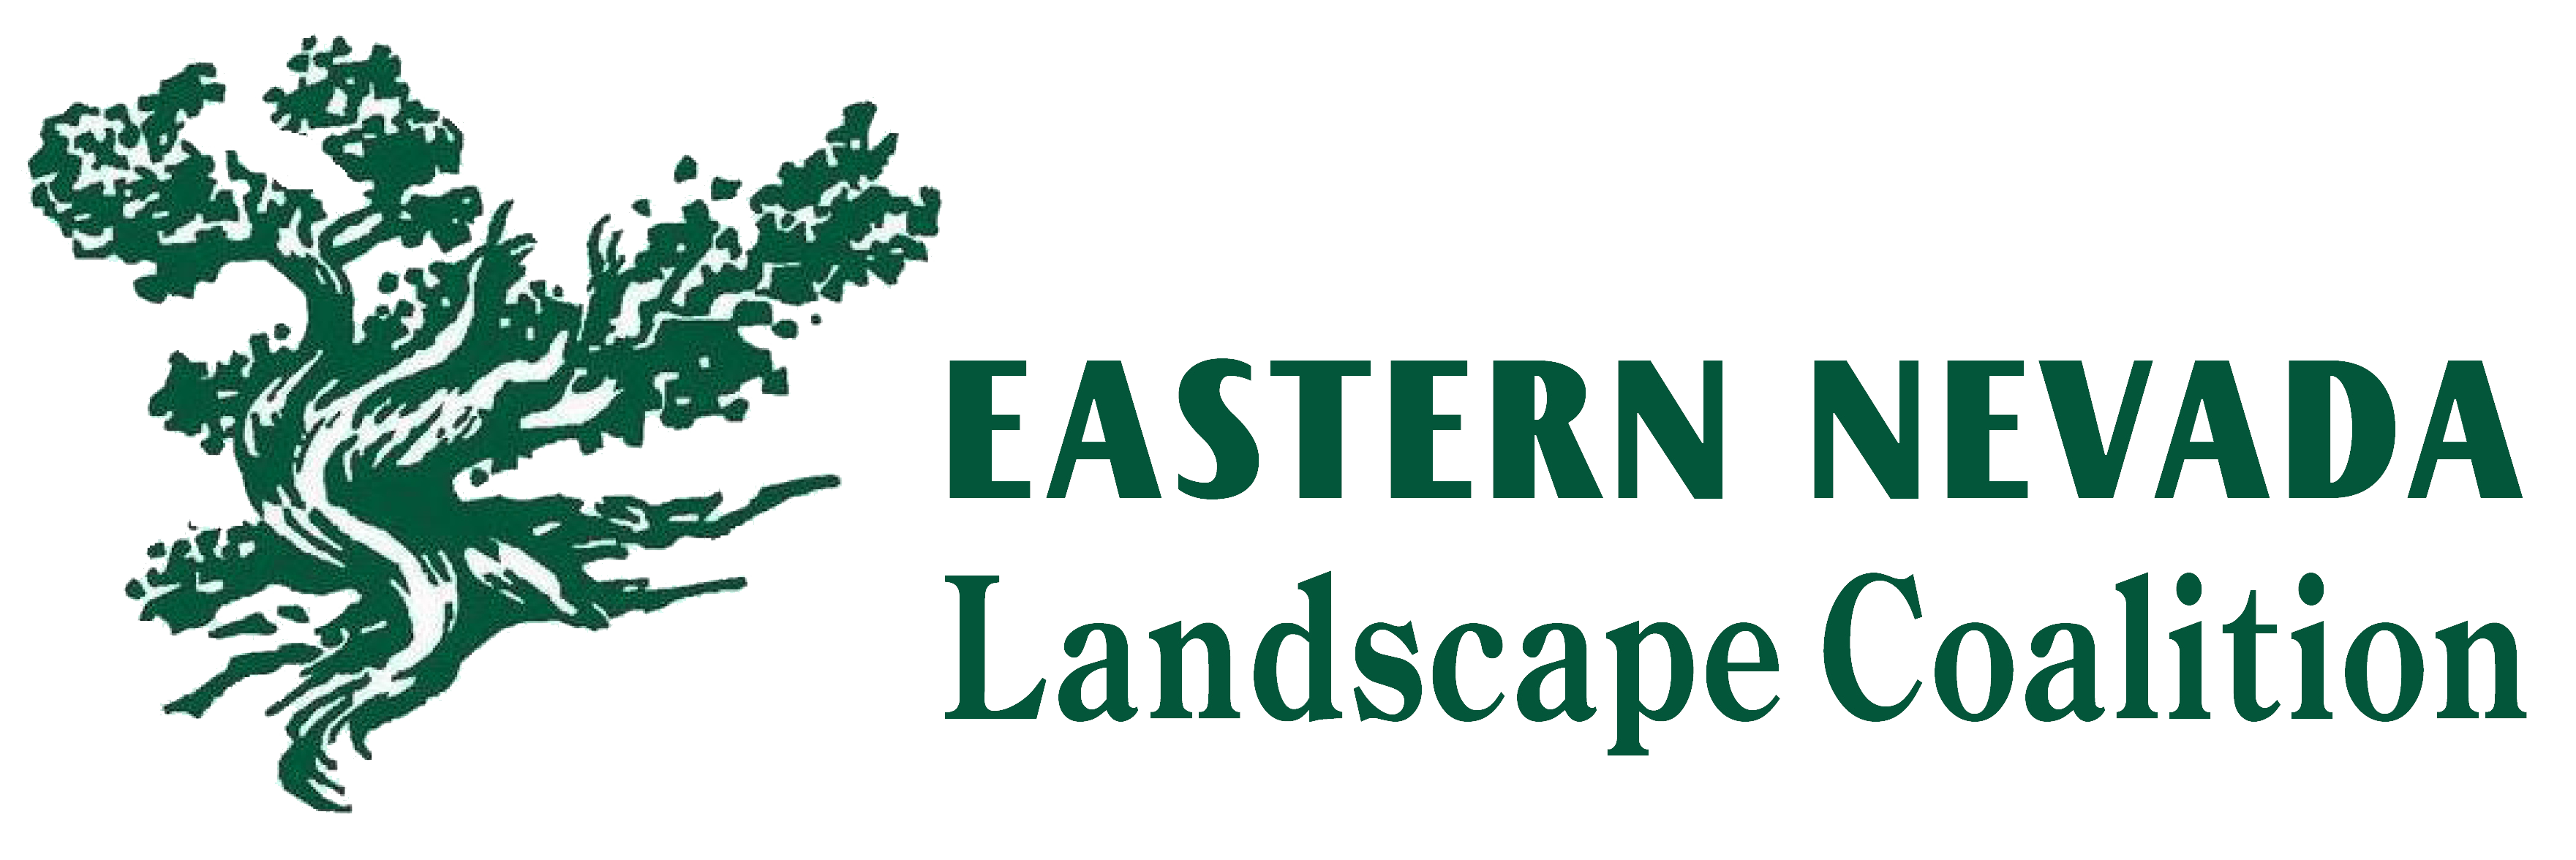 Eastern Nevada Landscape Coalition